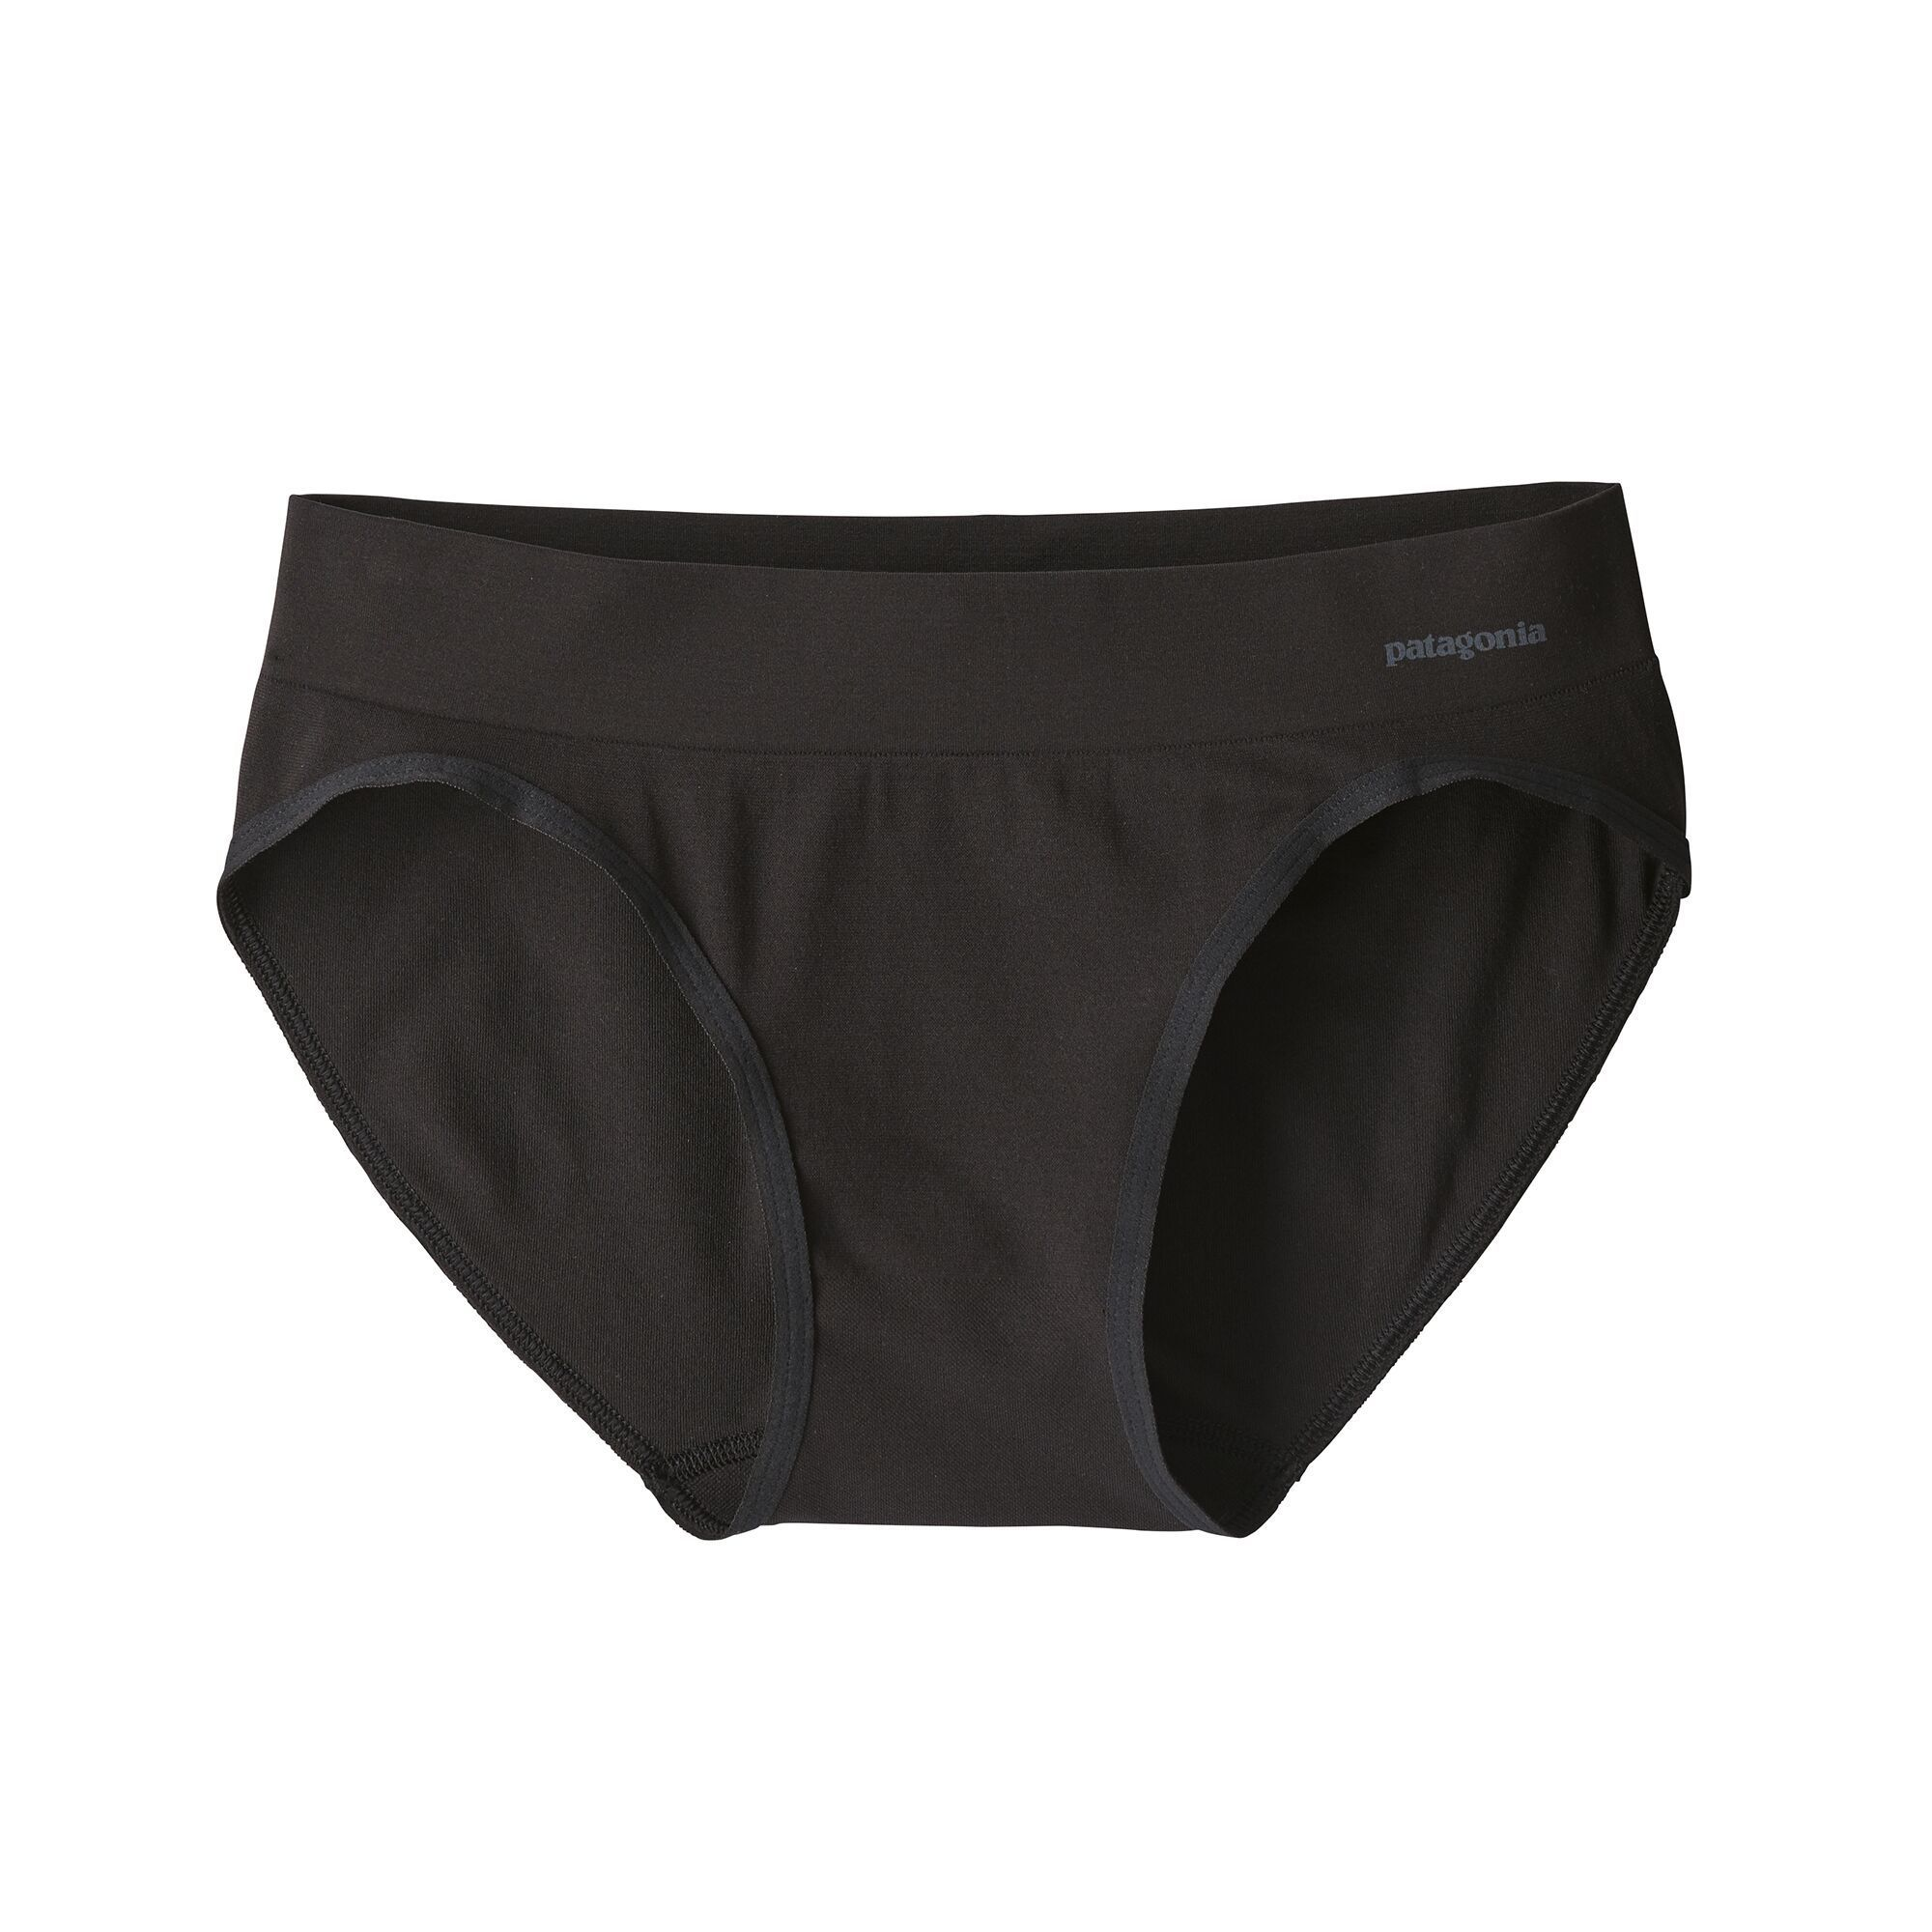 Patagonia - W's Active Briefs - Recycled Polyester - Weekendbee - sustainable sportswear